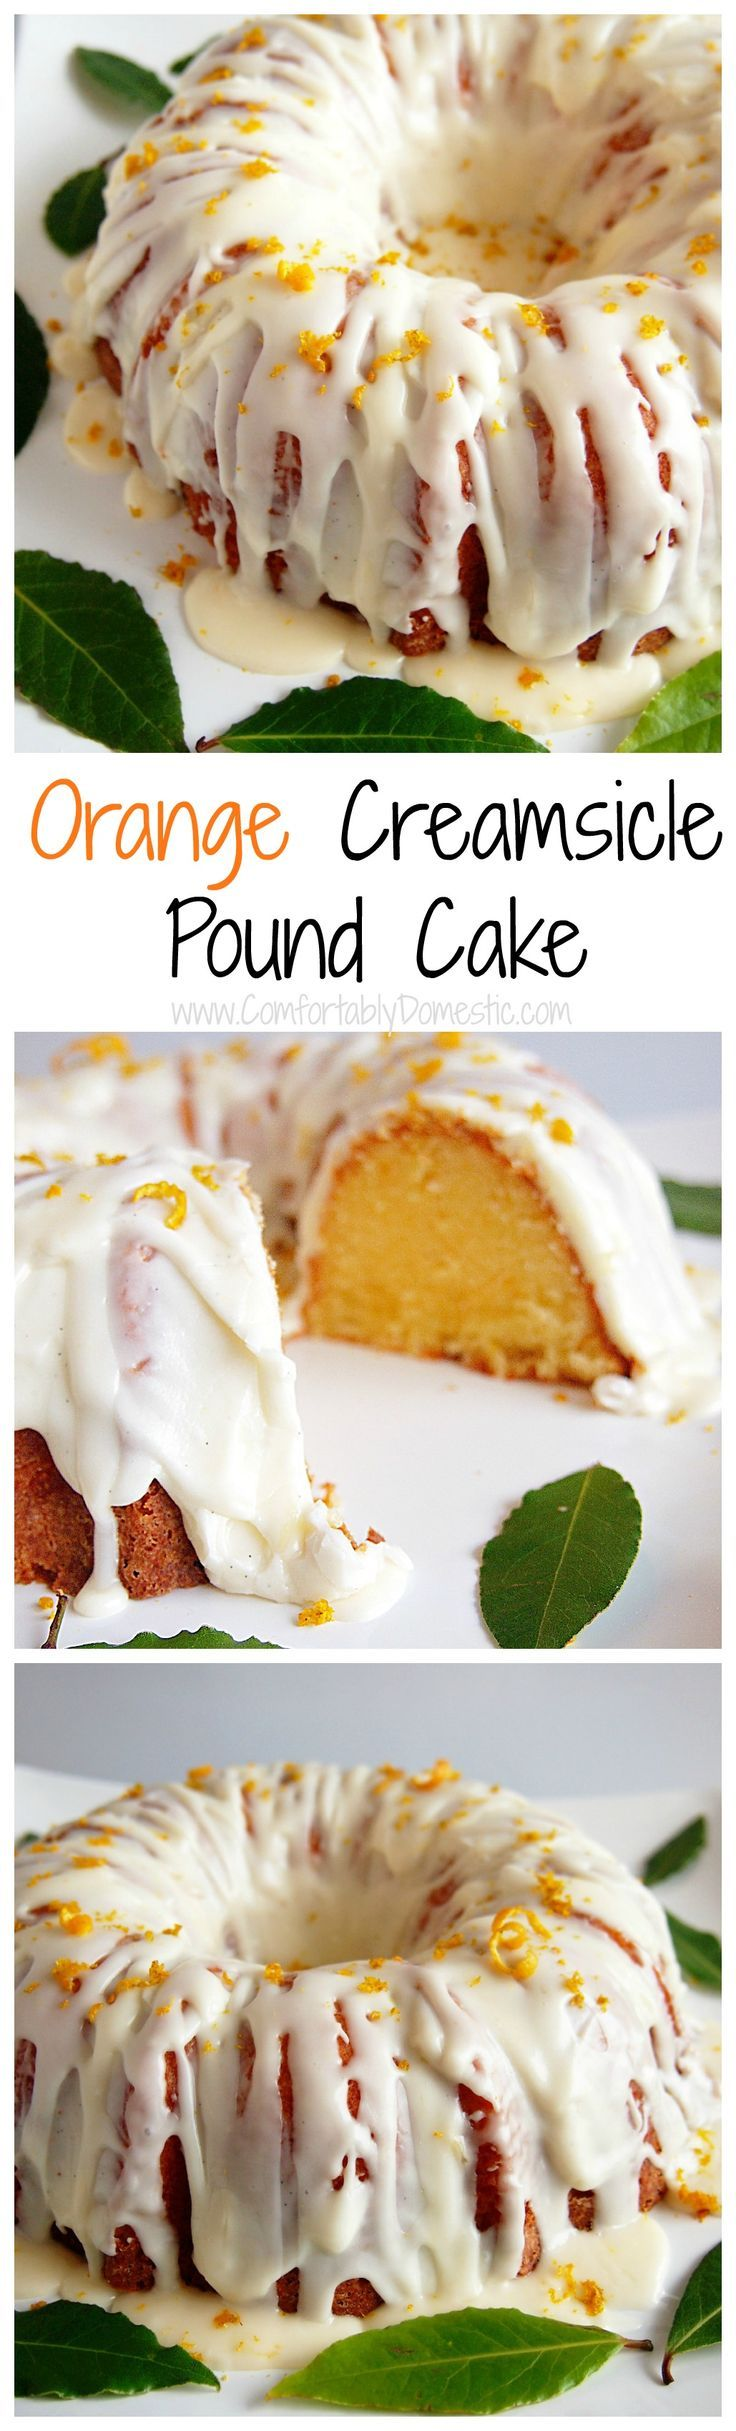 Orange Creamsicle Pound Cake marries zesty orange pound cake with creamy vanilla icing for a taste as refreshing as the nostalgic frozen treat. via /comfortdomestic/